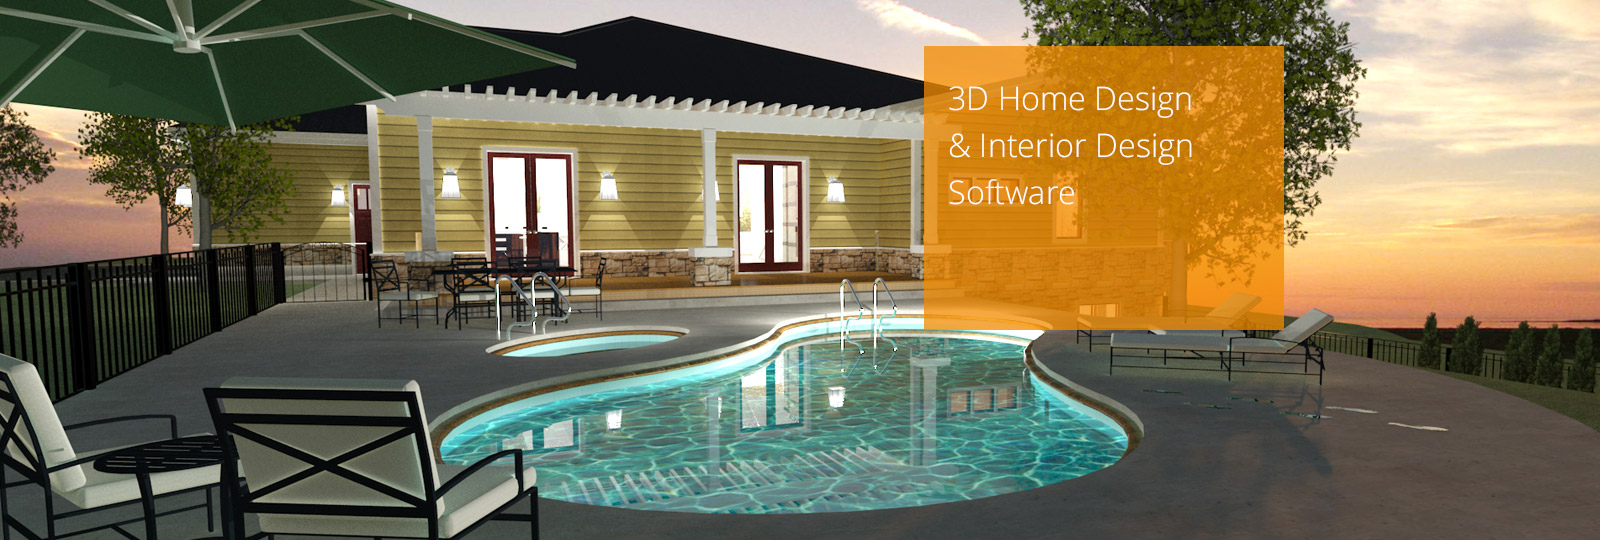 Free 3D Home Architect Submited Images